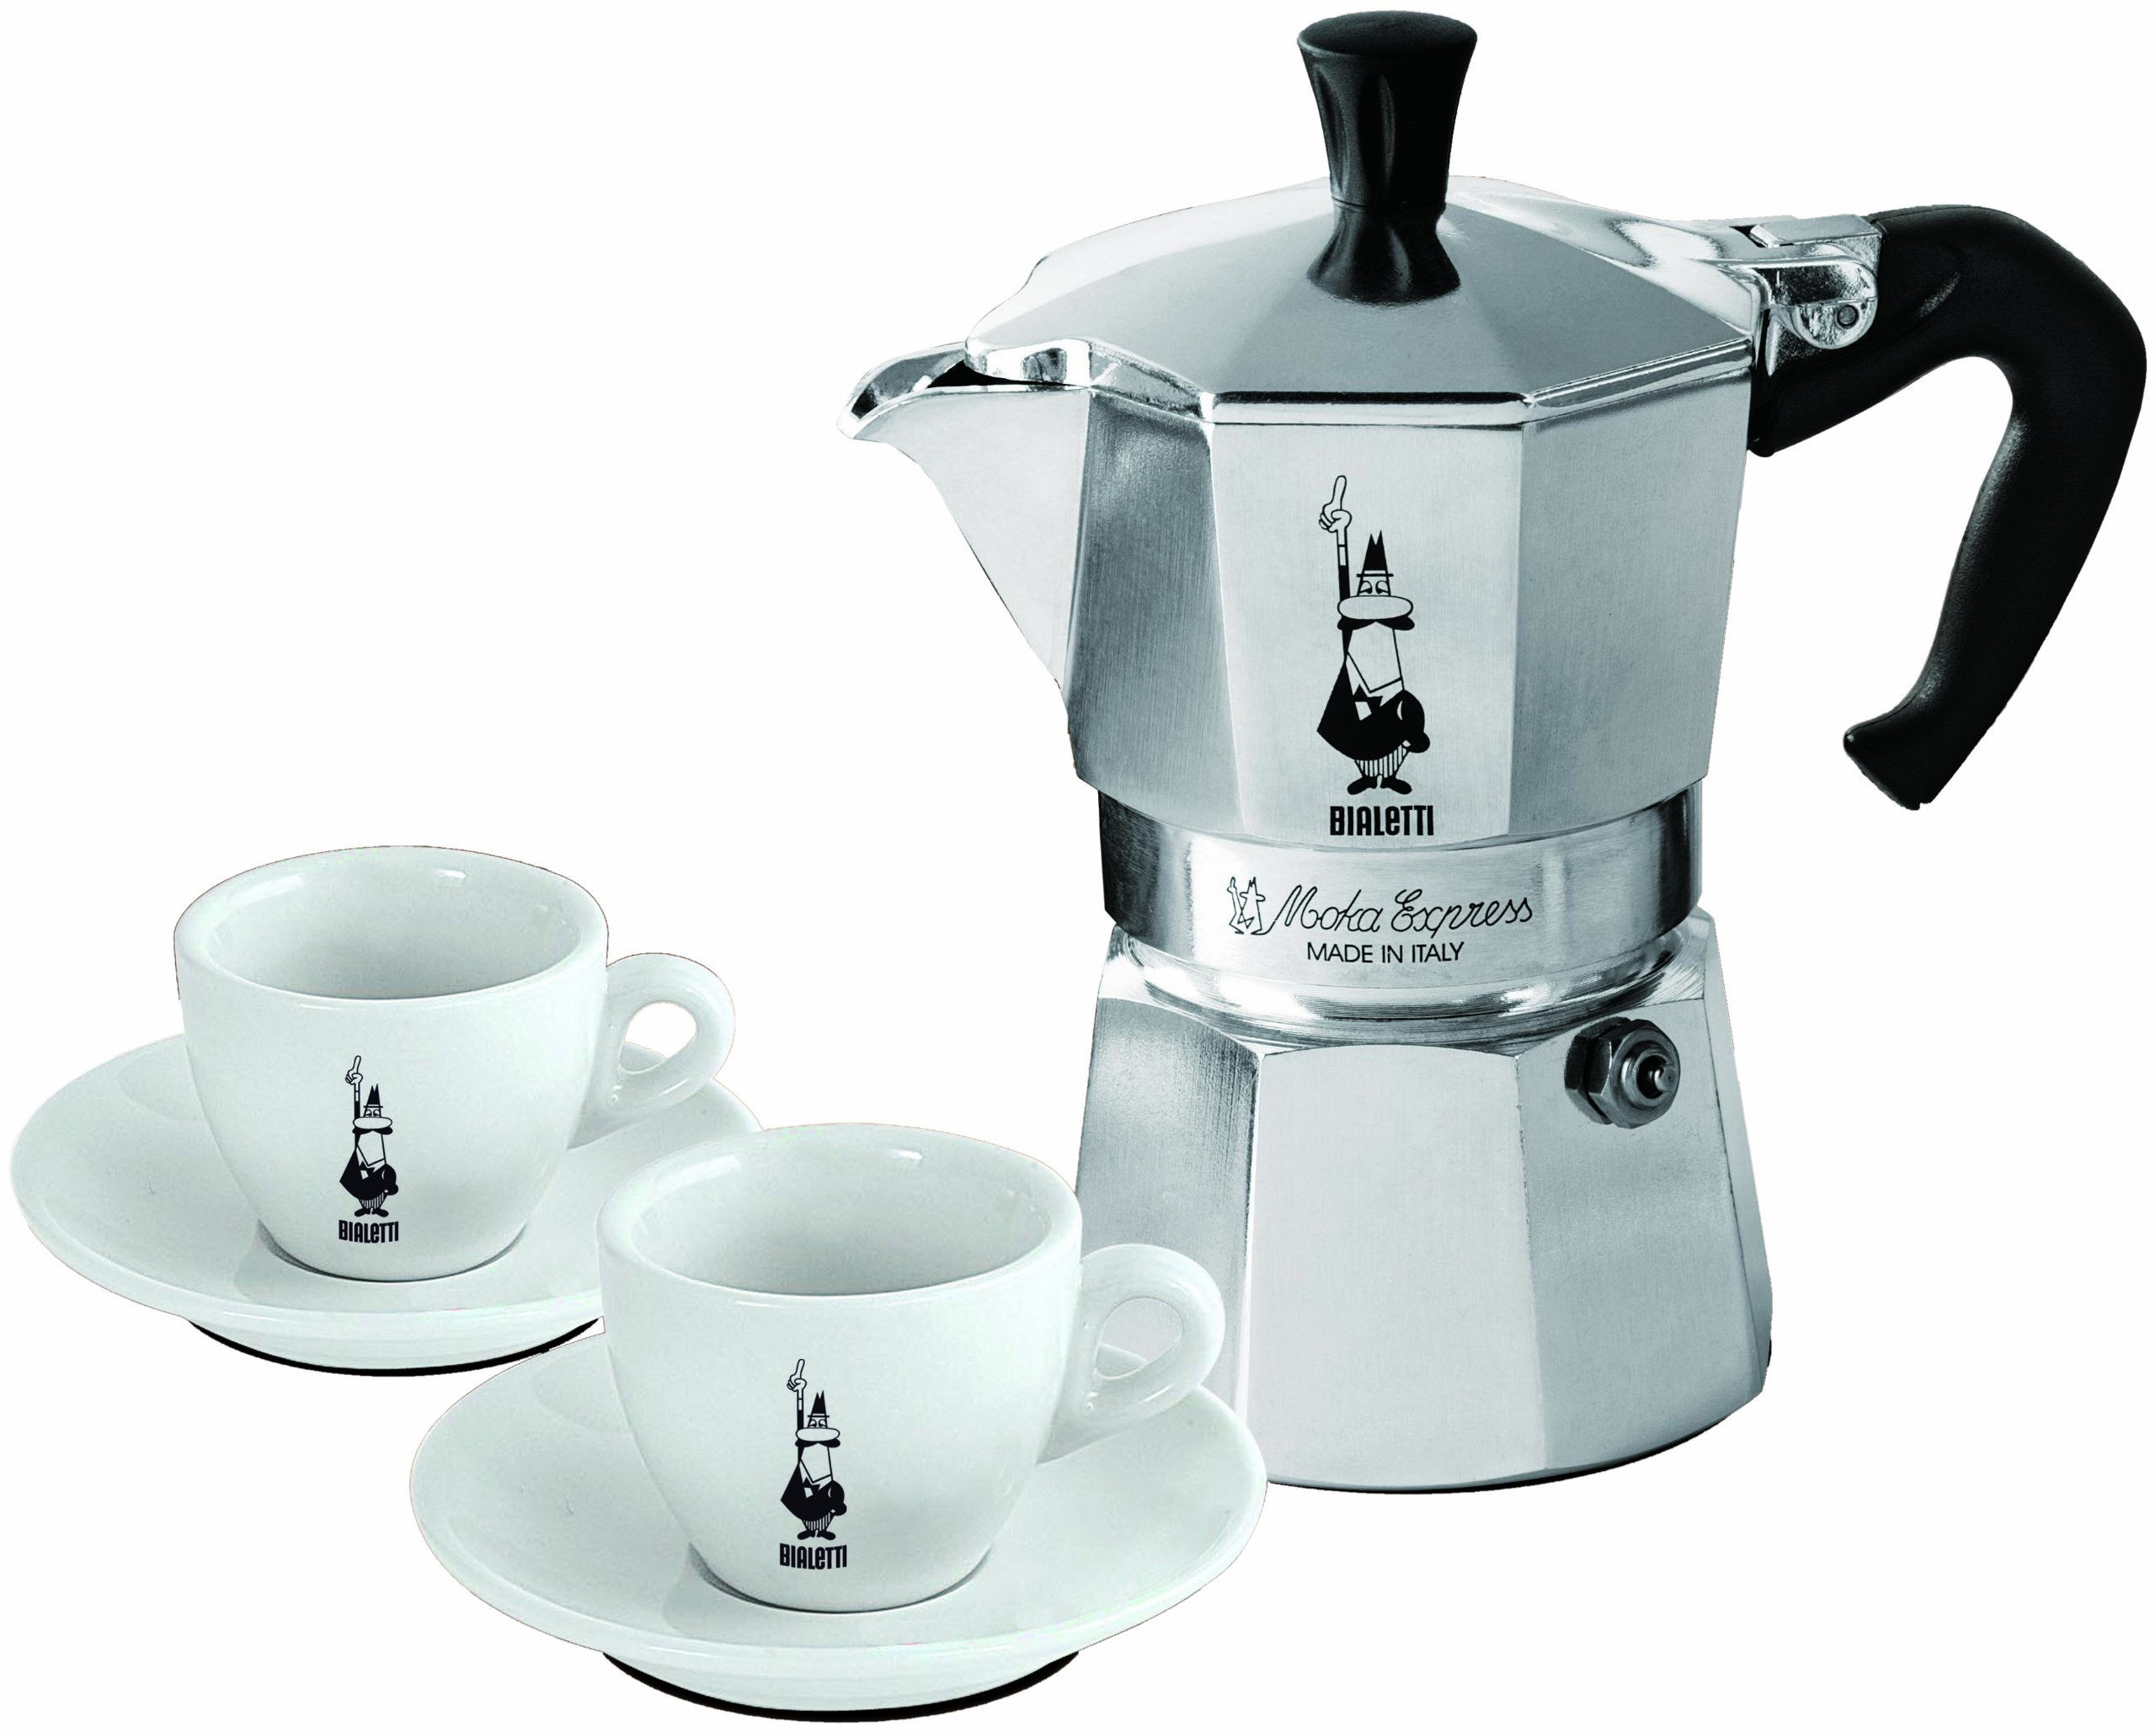 Bialetti Moka - Stove Top Espresso Maker Set - Includes 2 Espresso Cups & Saucers - Aluminium with Black Handle - 3 Cup